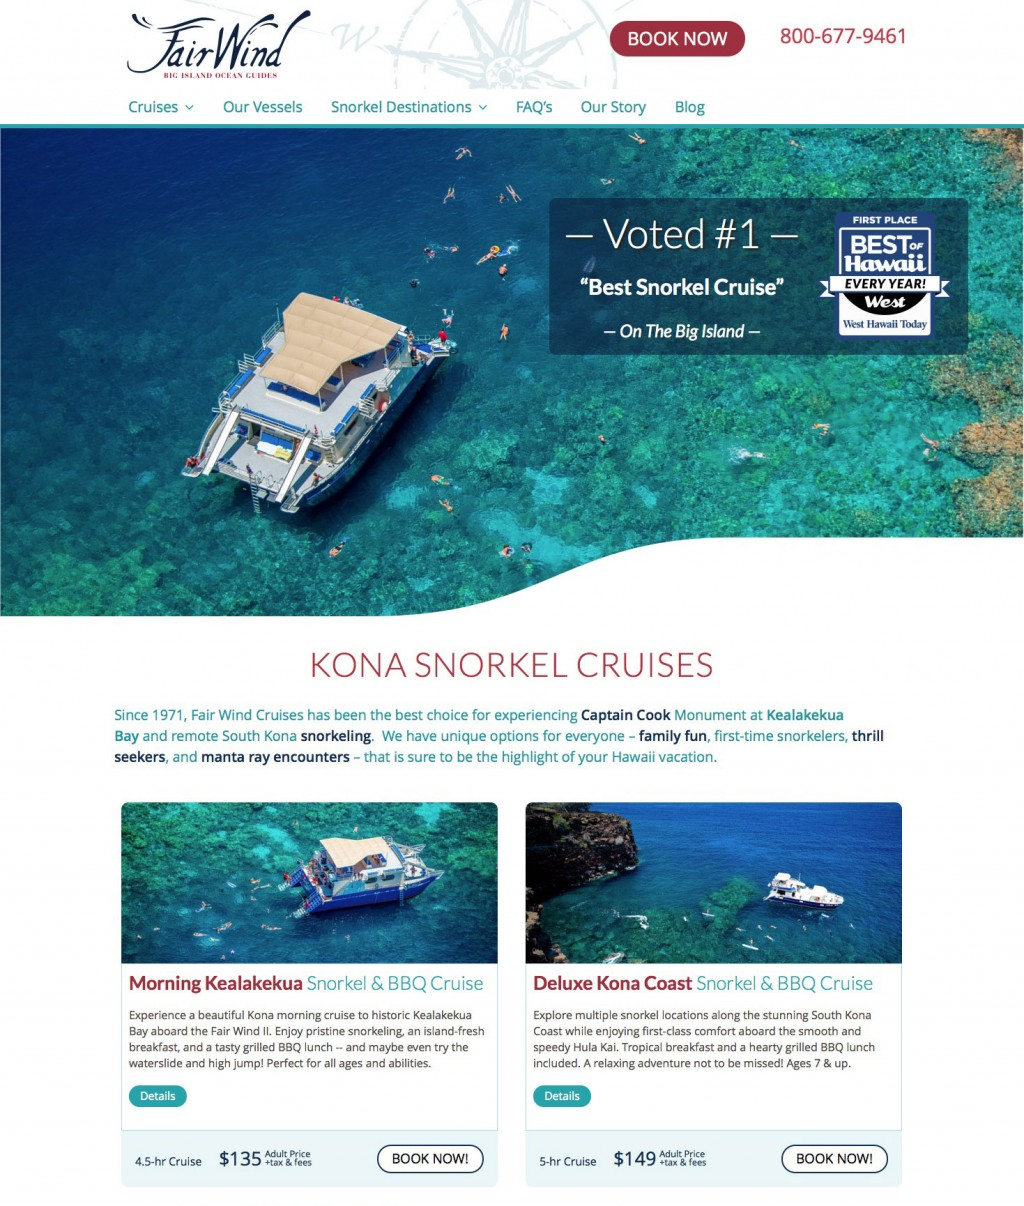 Fair Wind Cruises – Voted Best Snorkel Cruise On The Big Island